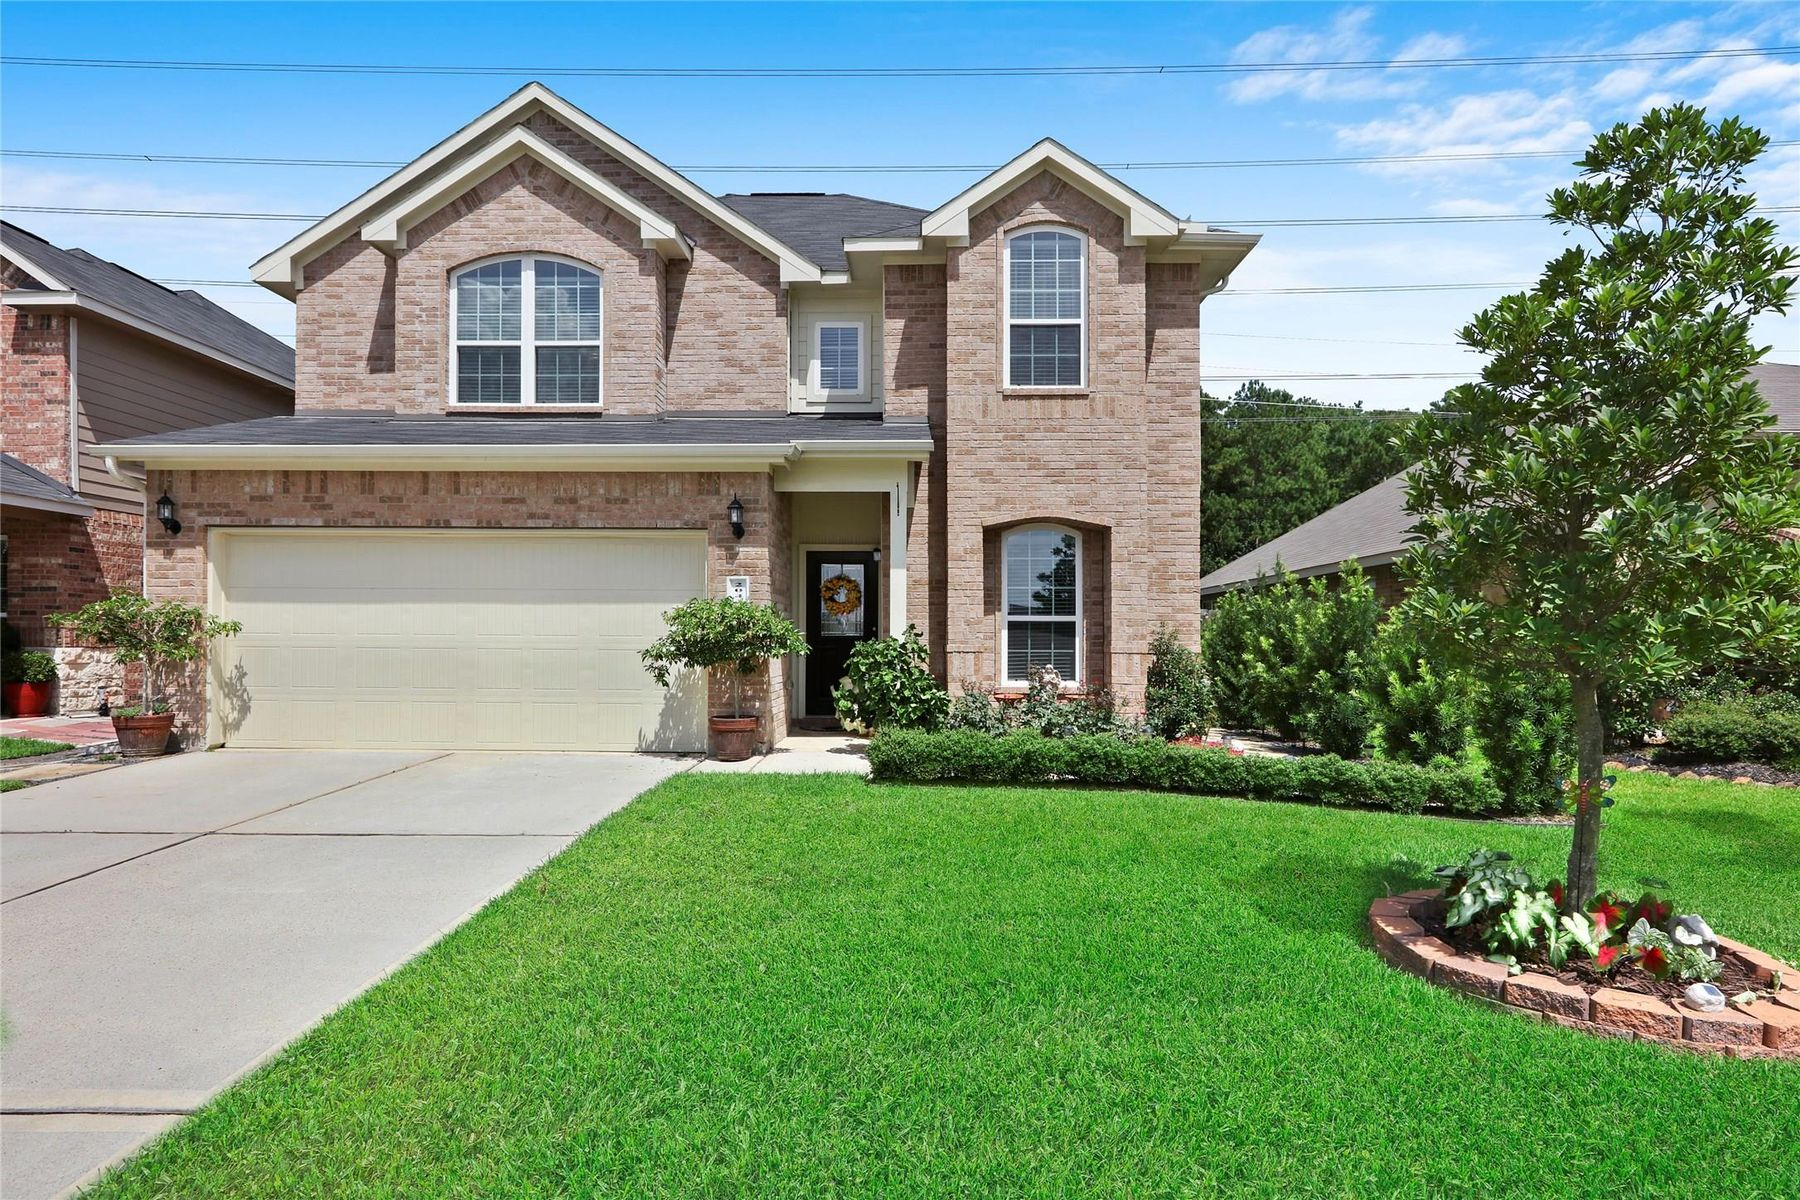 Single Family Homes for Sale at 20430 Lookout Bend Drive Humble, Texas 77338 United States